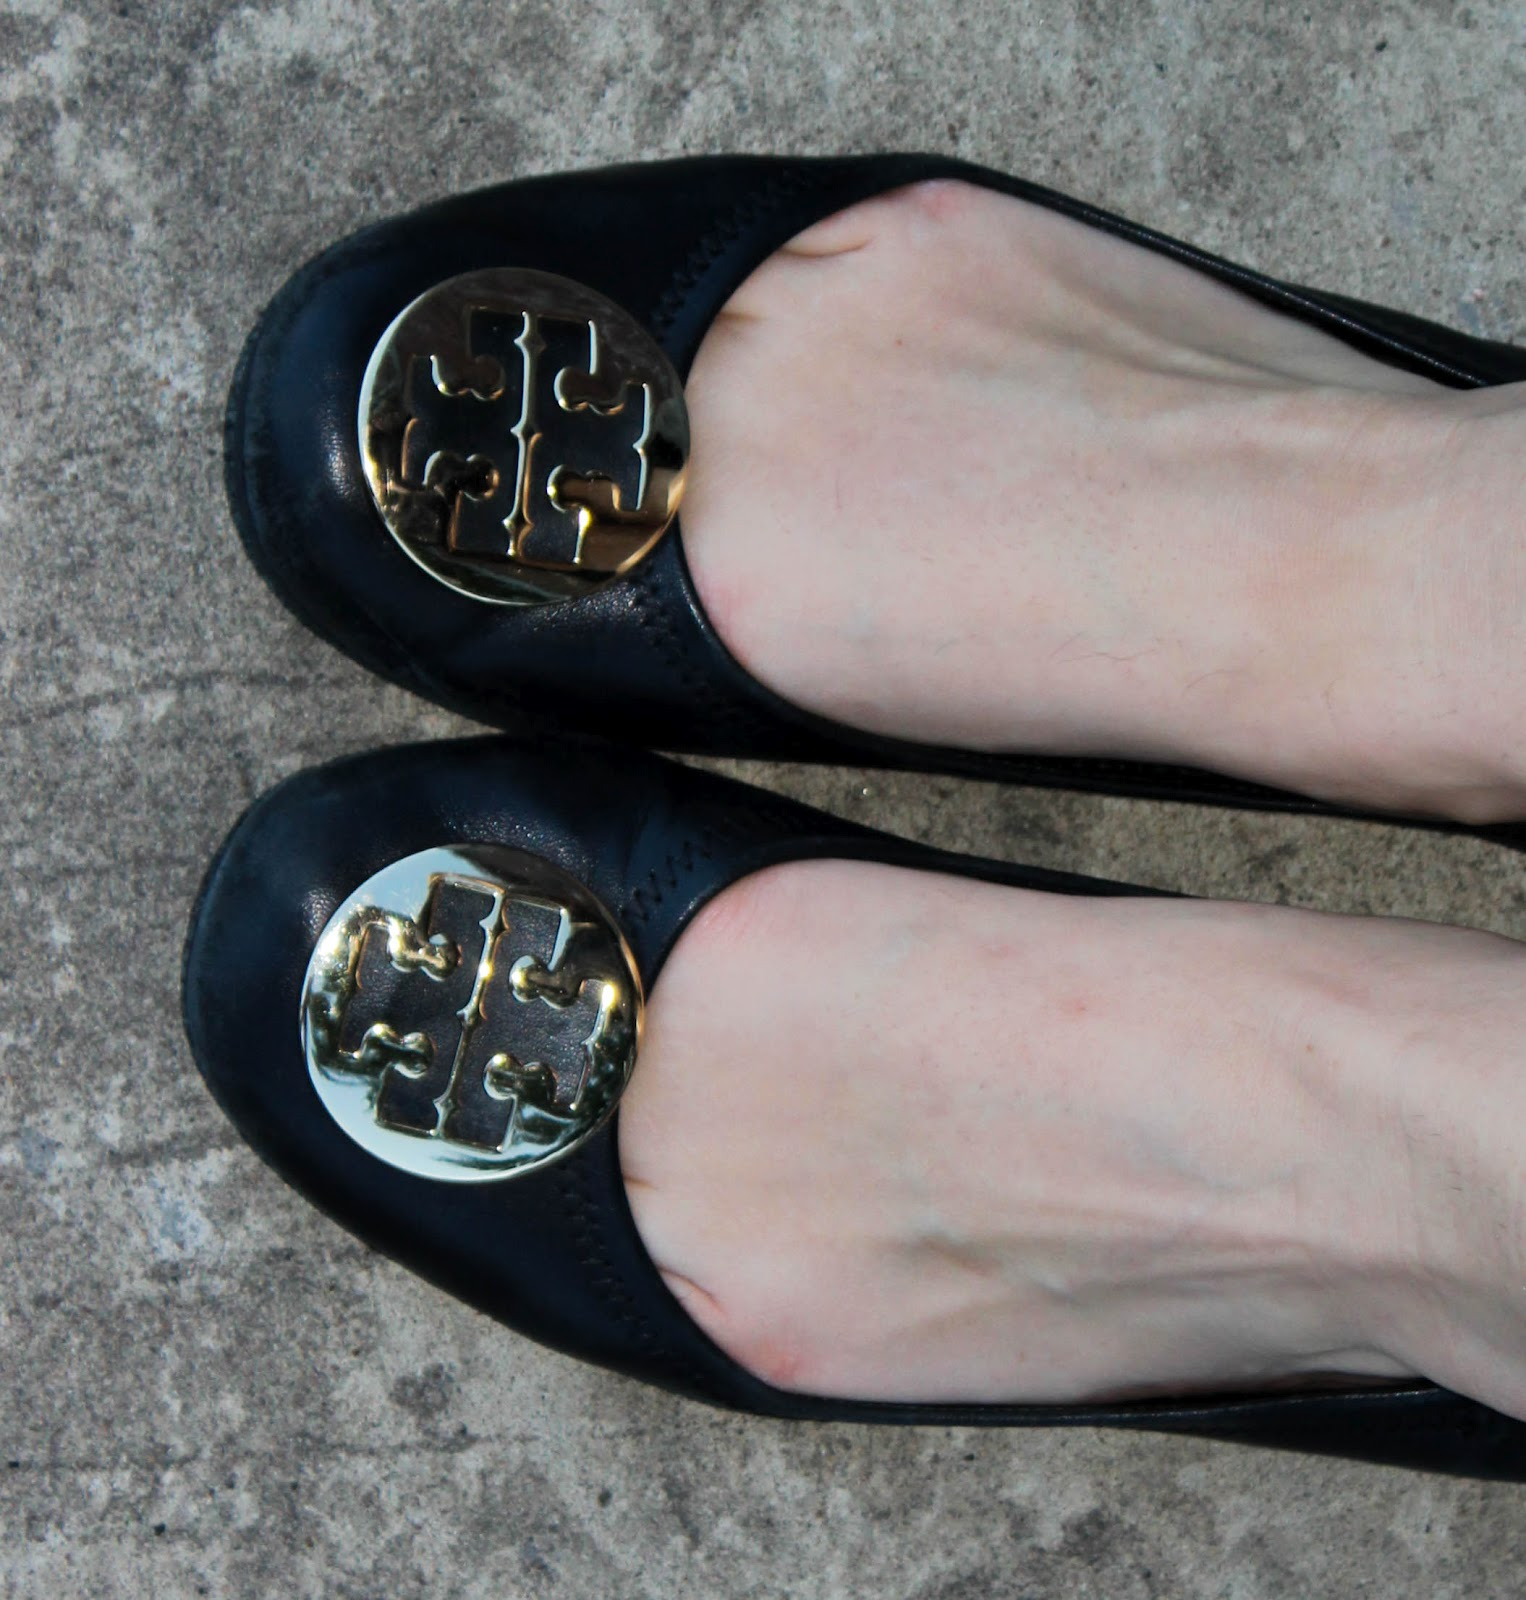 I just realized my Tory Burch flats have not made their debut yet on this  blog. So welcome little shoes that hurt my feet like crazy the first three  weeks.